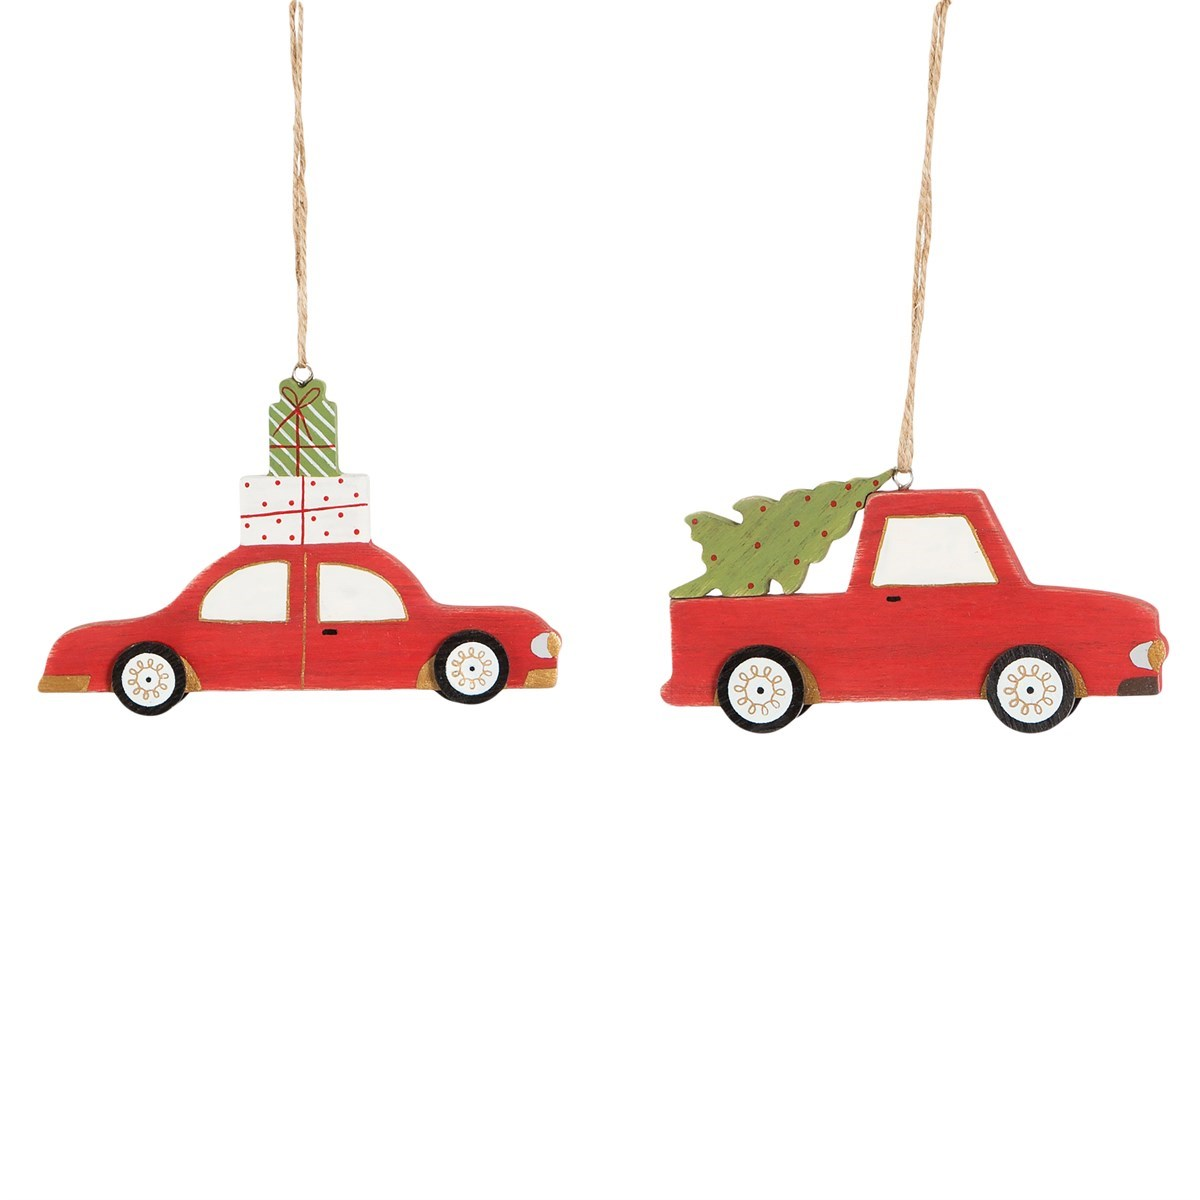 Christmas Car Decorations.Coming Home For Christmas Car Decorations Set Of 2